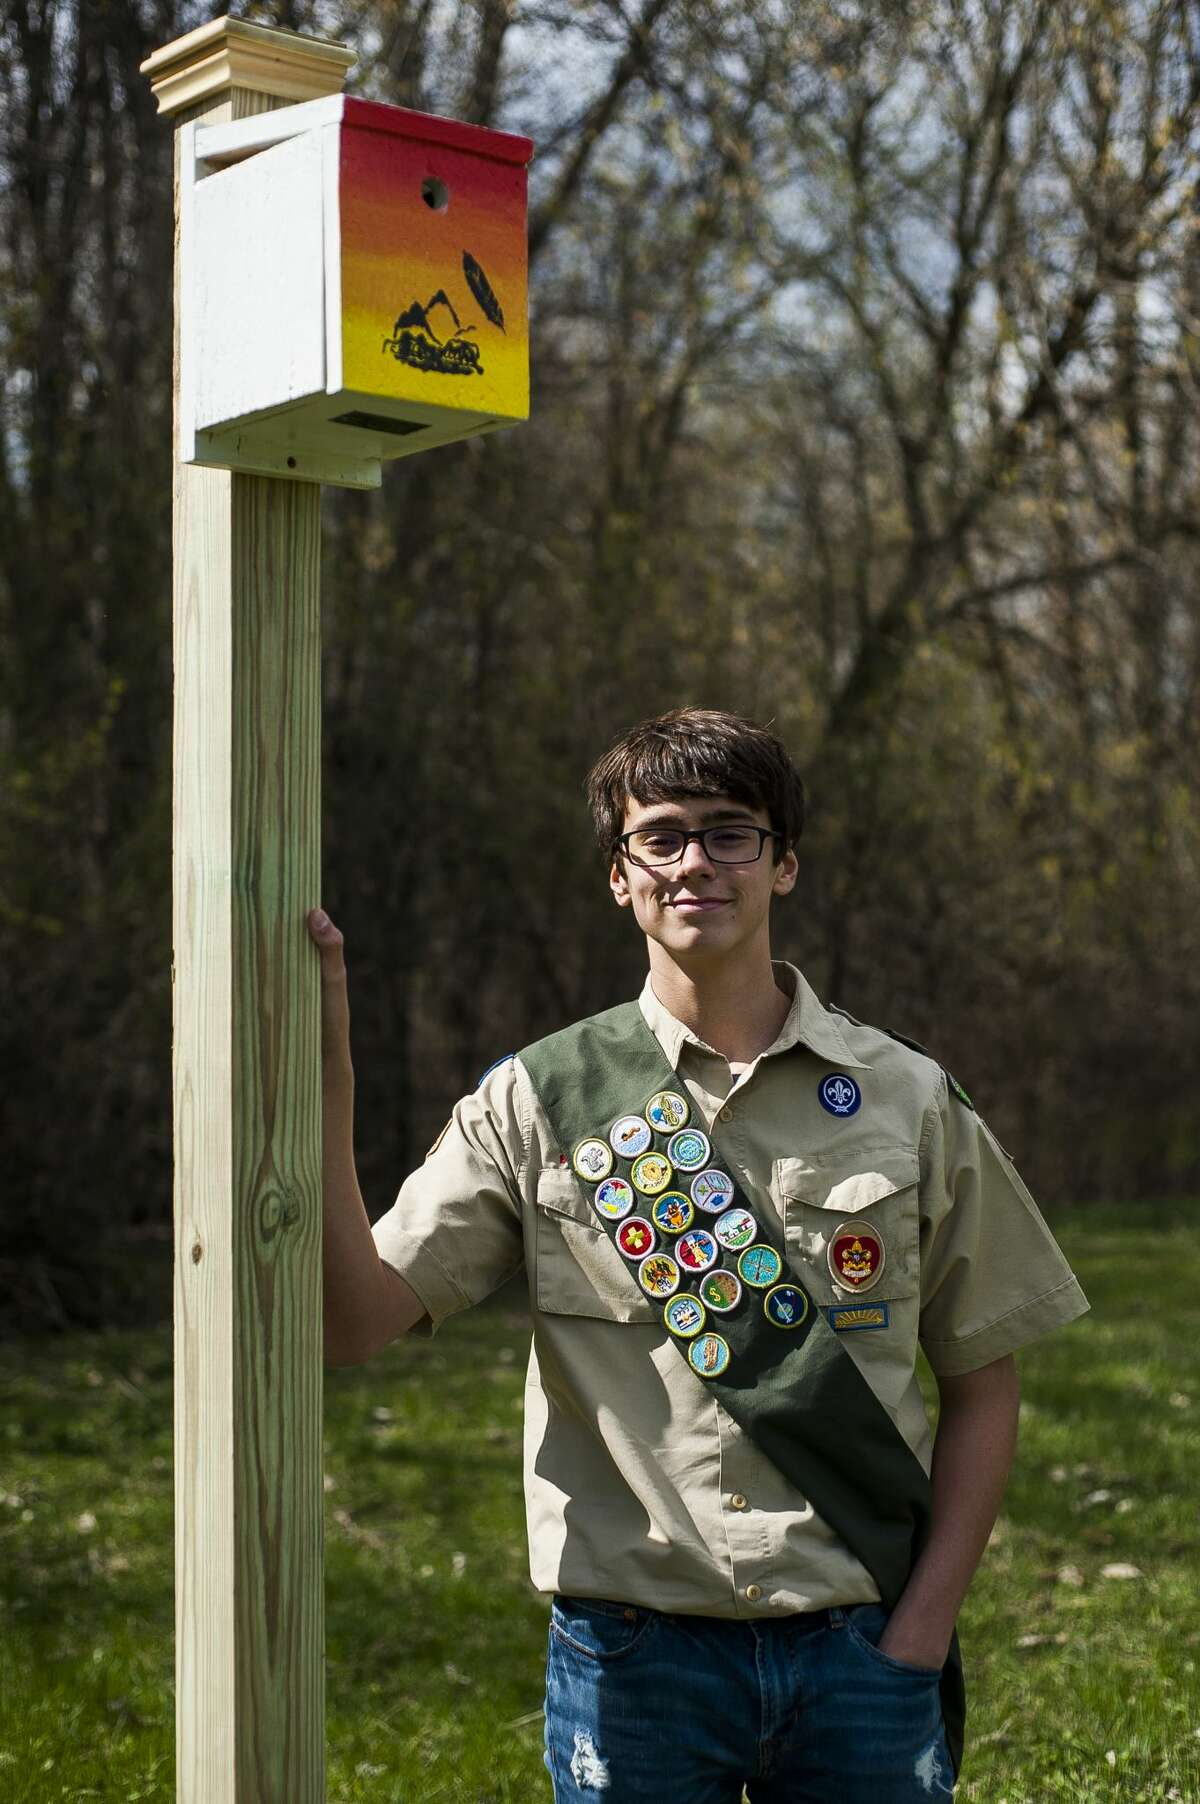 Connor McBride, a 15-year-old member of Boy Scout Troop 768, poses for a photo with one of the birdhouses, along with two bat houses, that were installed Friday, April 26, 2019 at Currie Golf Course as part of McBride's Eagle Scout project. (Katy Kildee/kkildee@mdn.net)